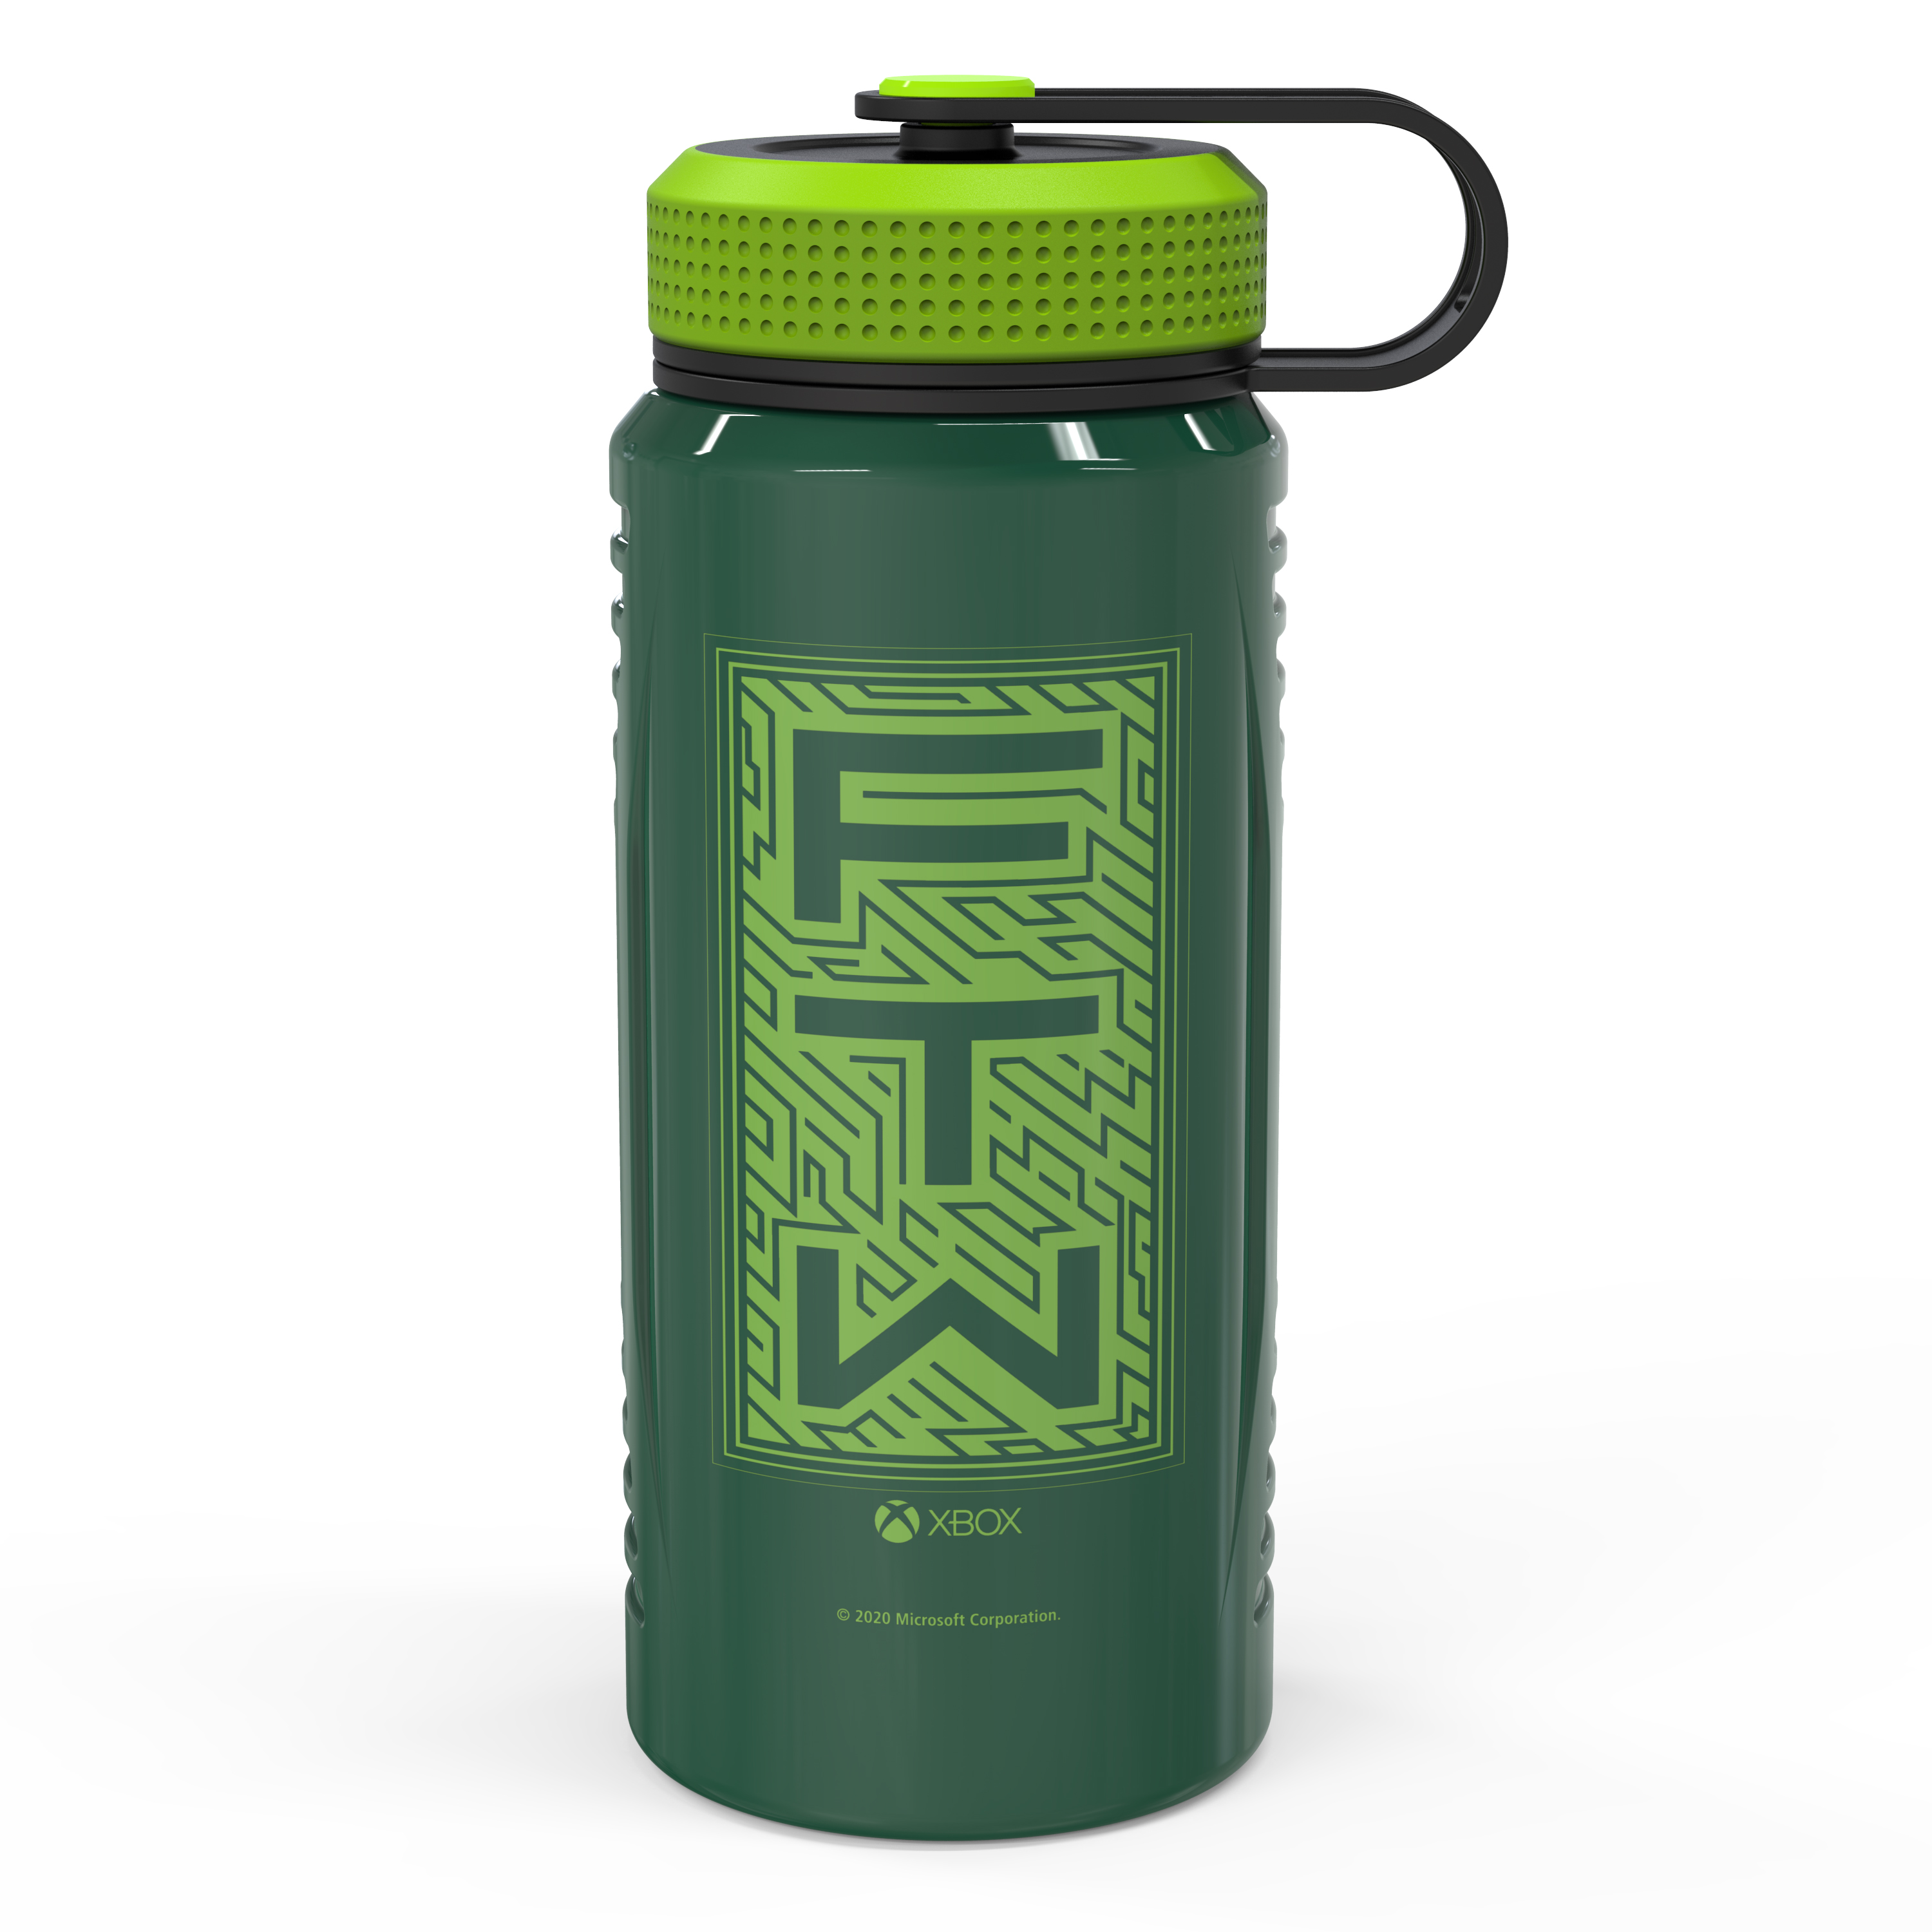 Xbox 24 ounce Stainless Steel Insulated Water Bottle, For the Win slideshow image 1